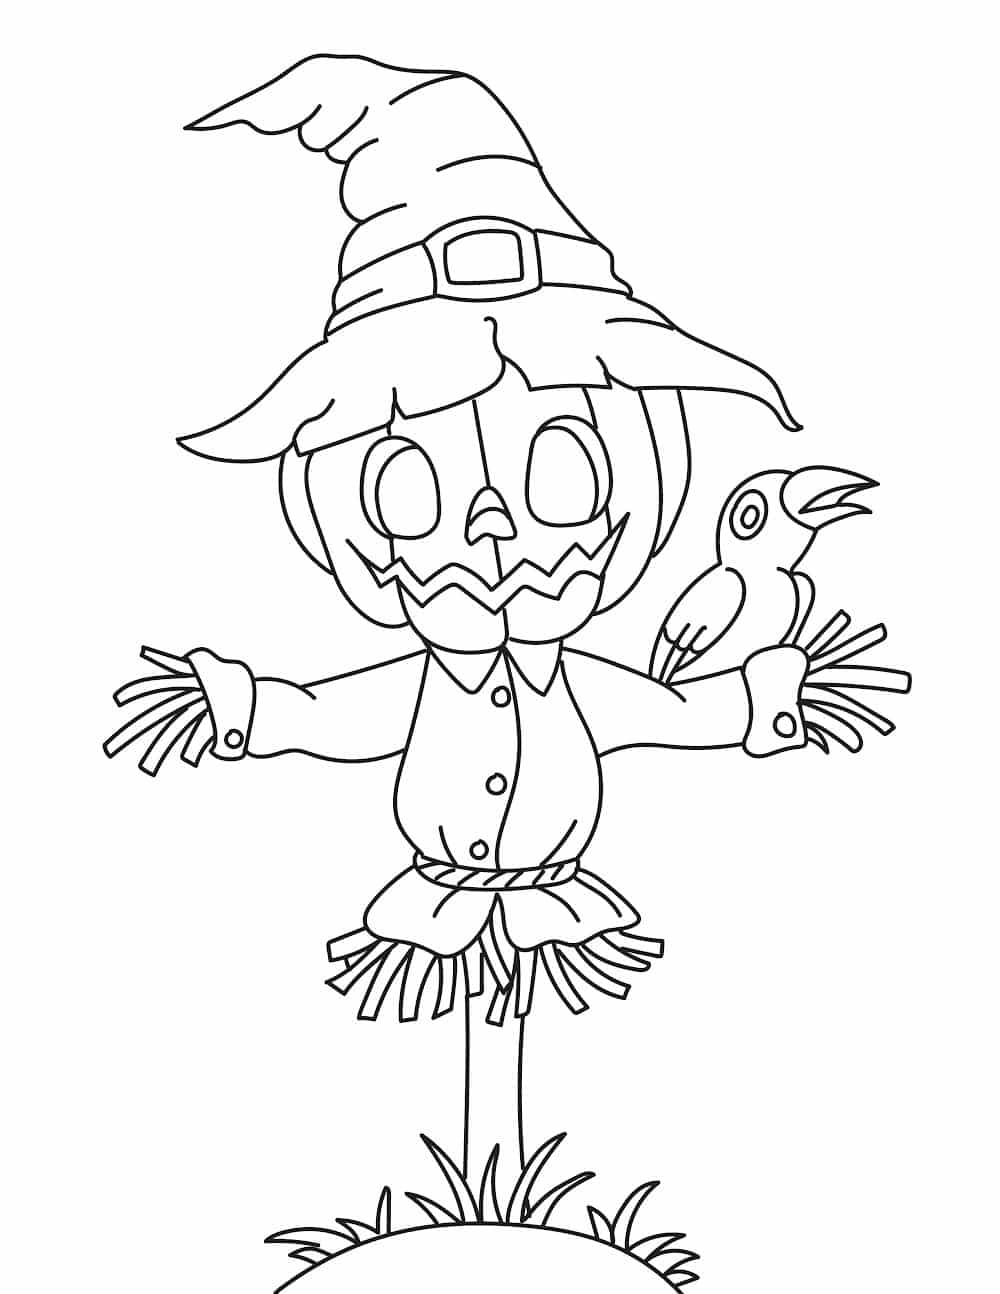 The scarecrow in these free printable fall coloring pages for adults and kids may not be very good at his job but he sure is cute!